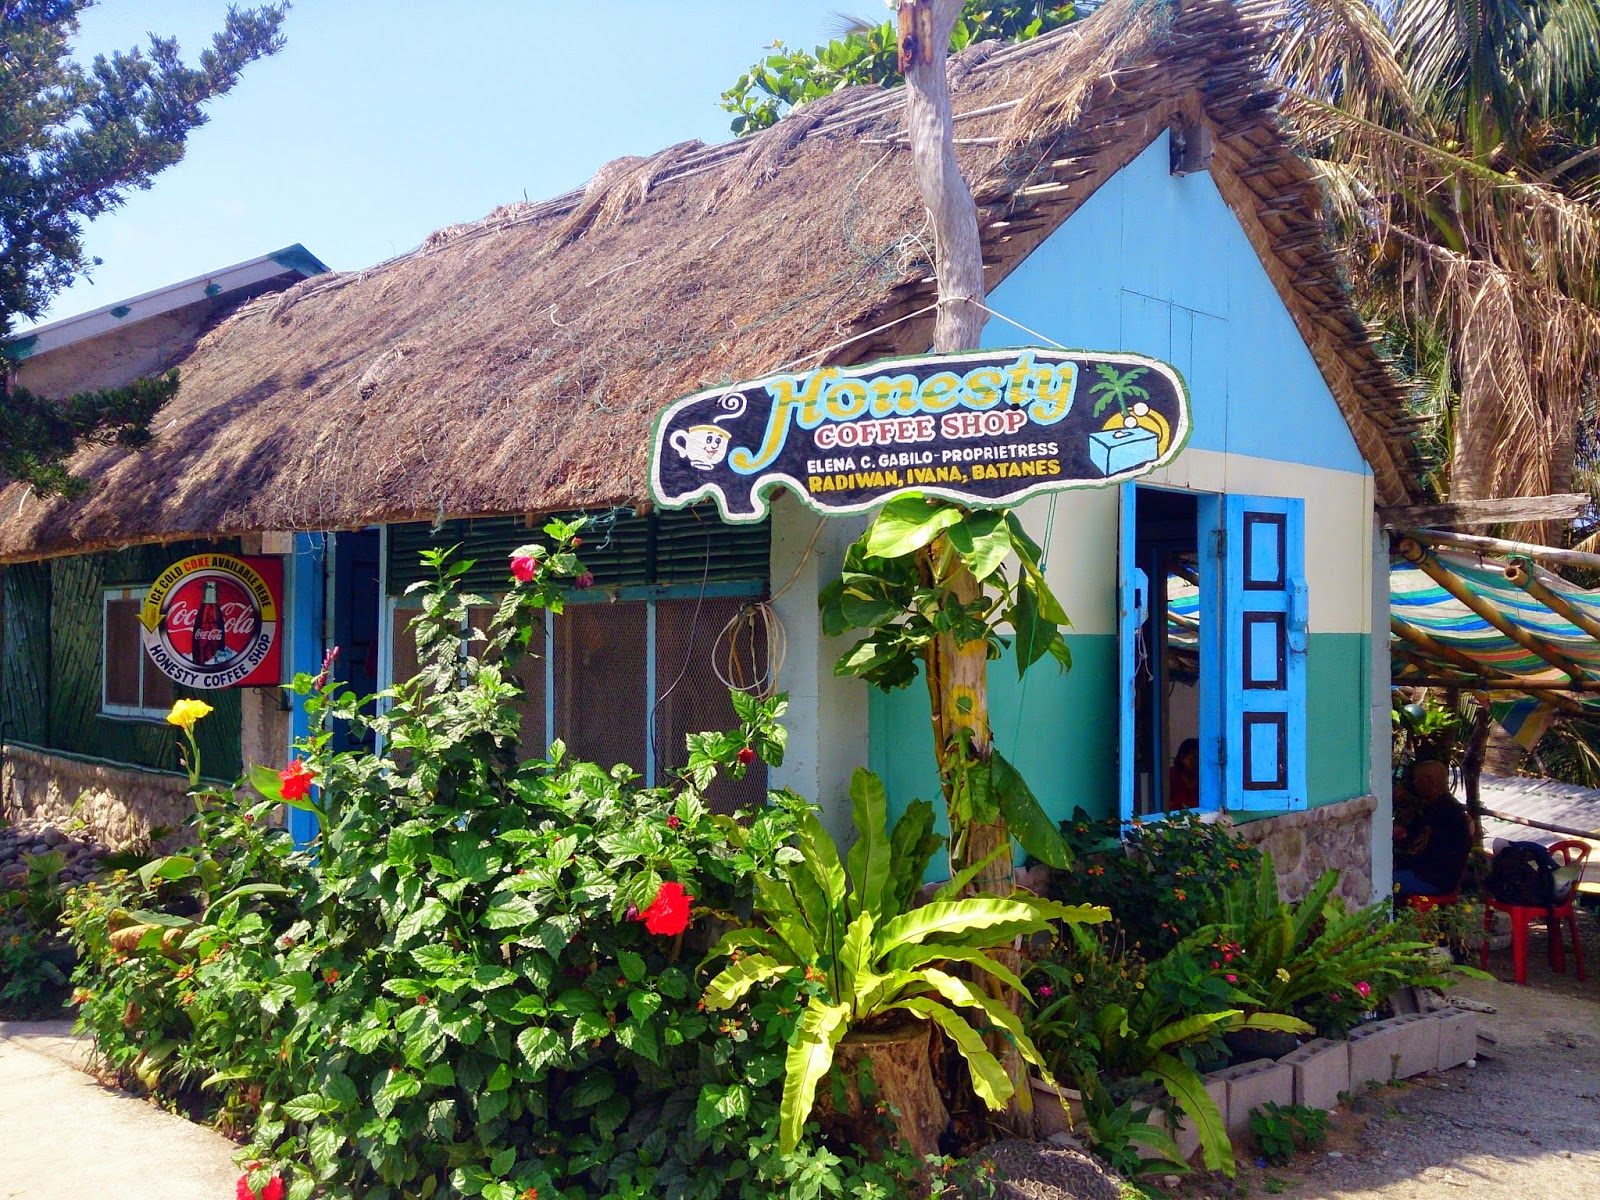 Honesty Coffee Shop, South Batan, Batanes